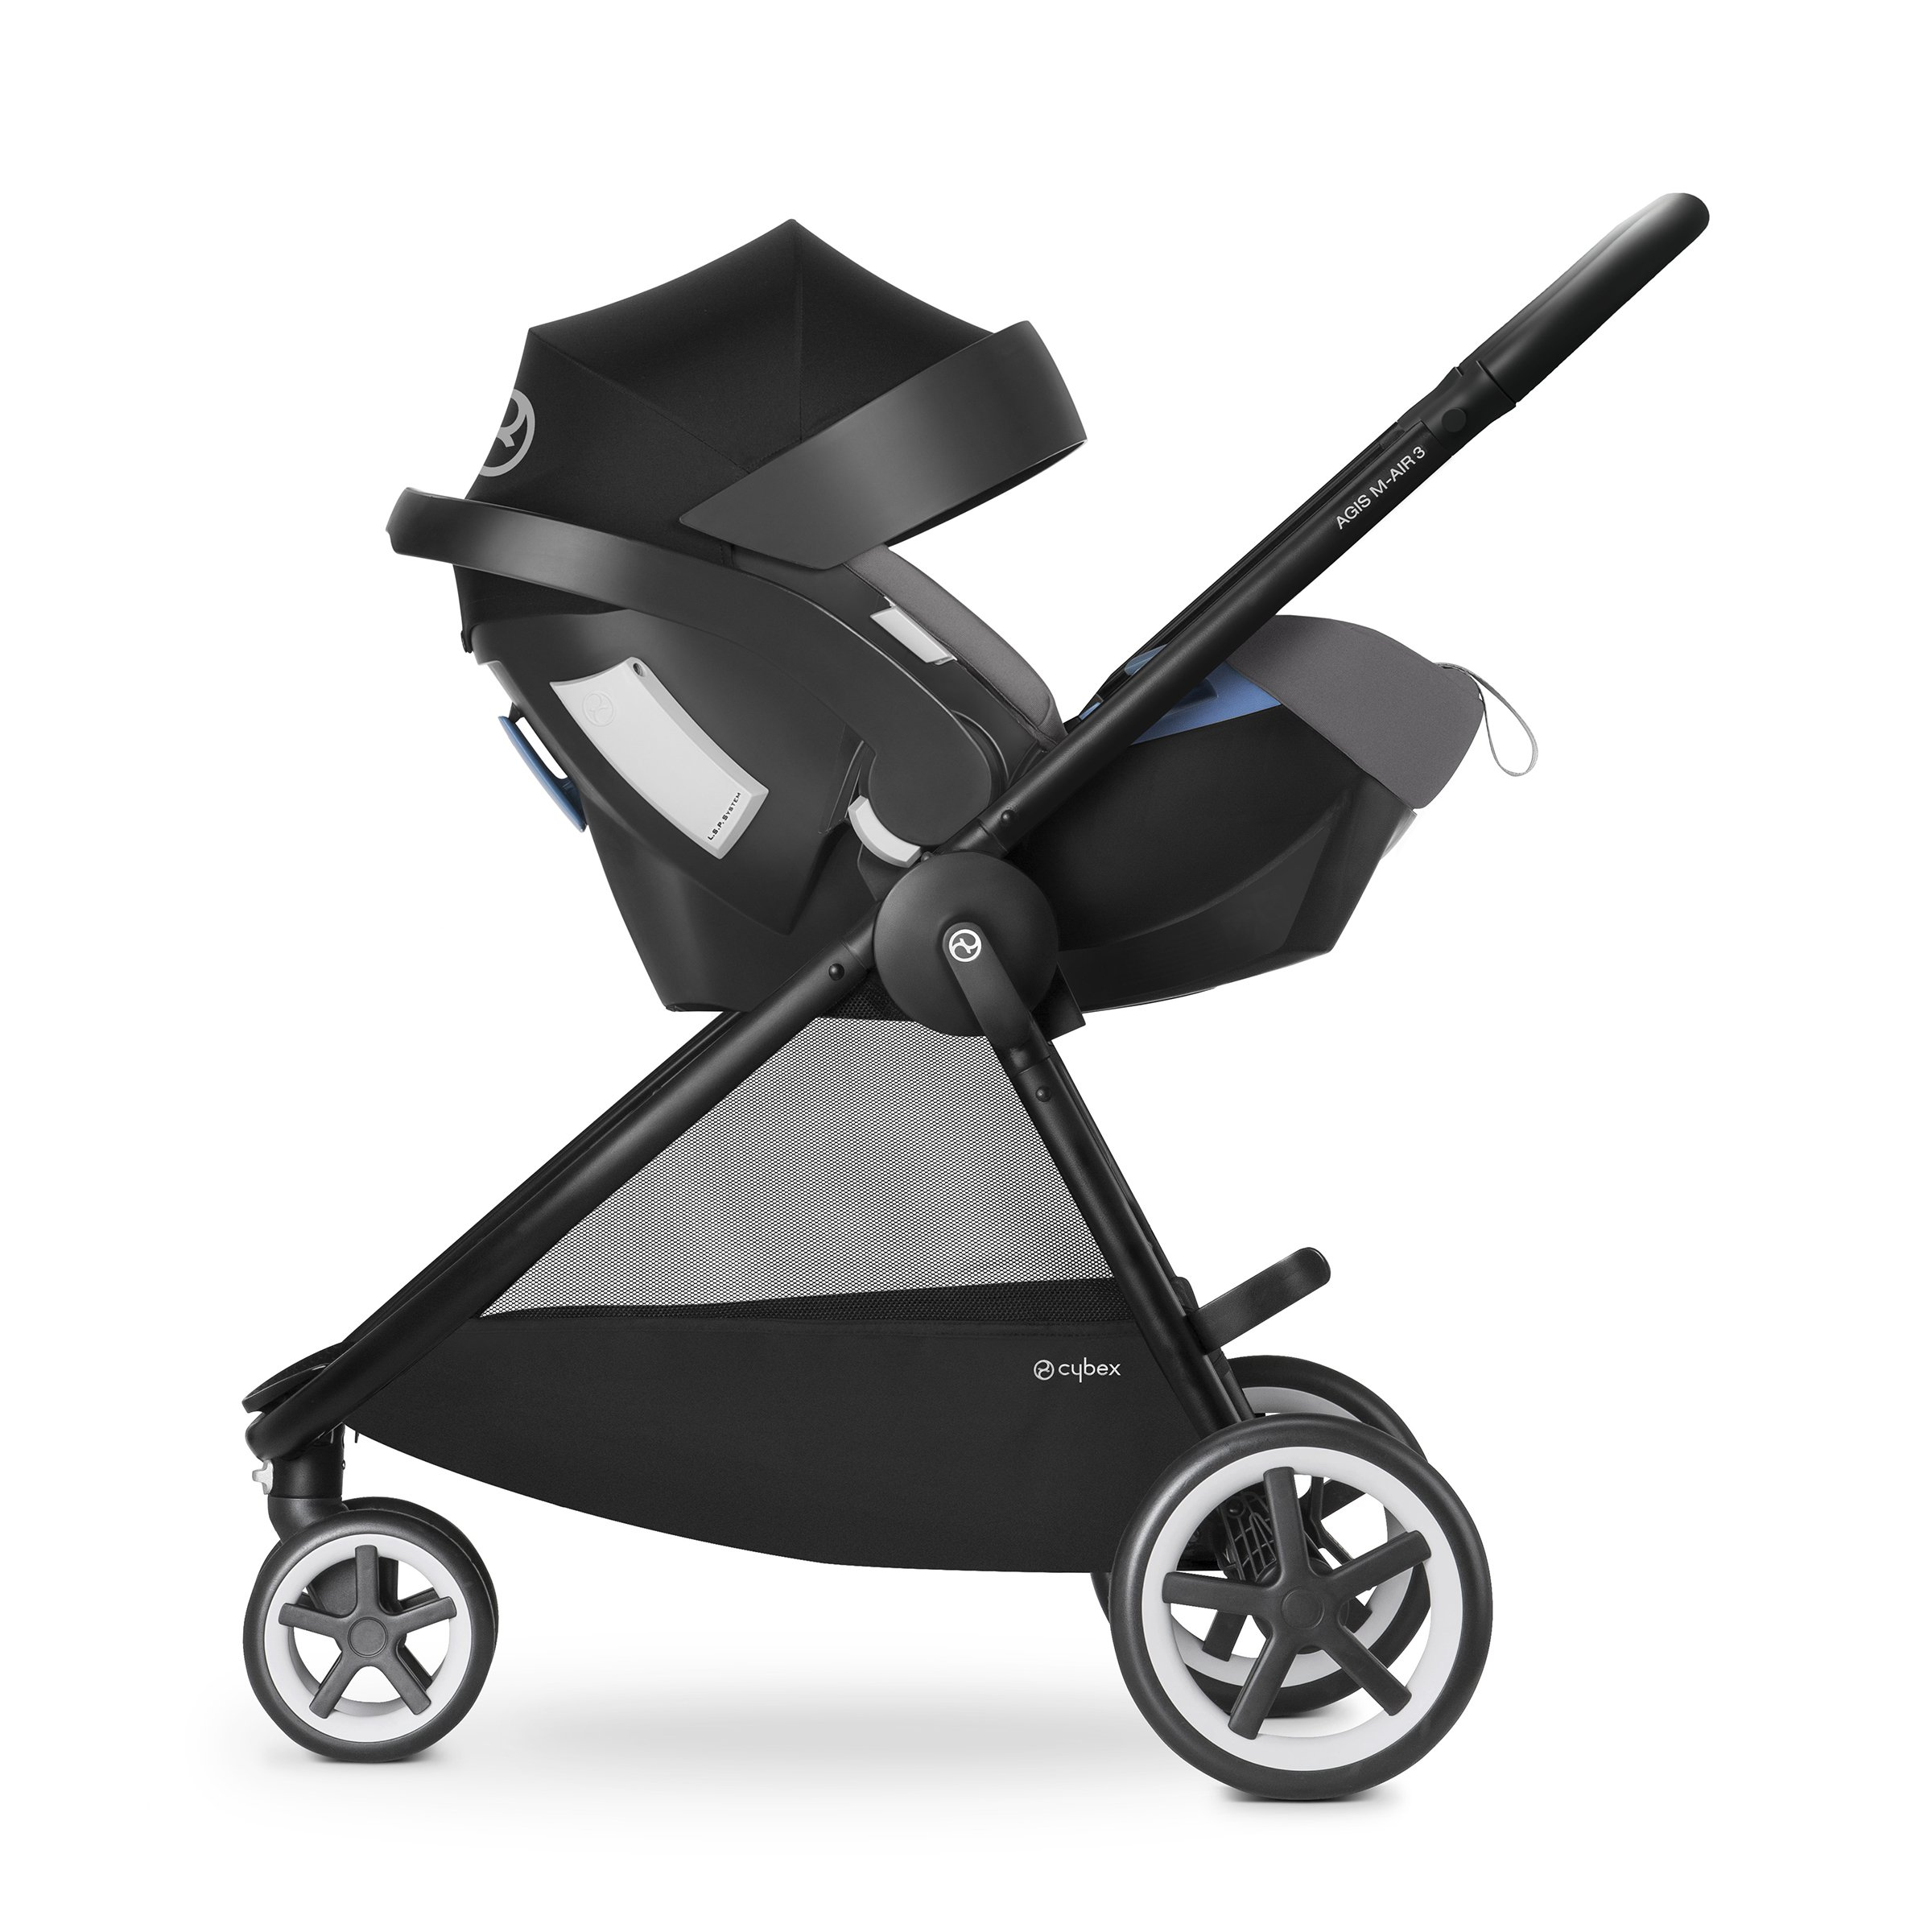 Cybex Agis M-Air 3/Aton/Aton Base Travel System, Moon Dust by Cybex (Image #2)